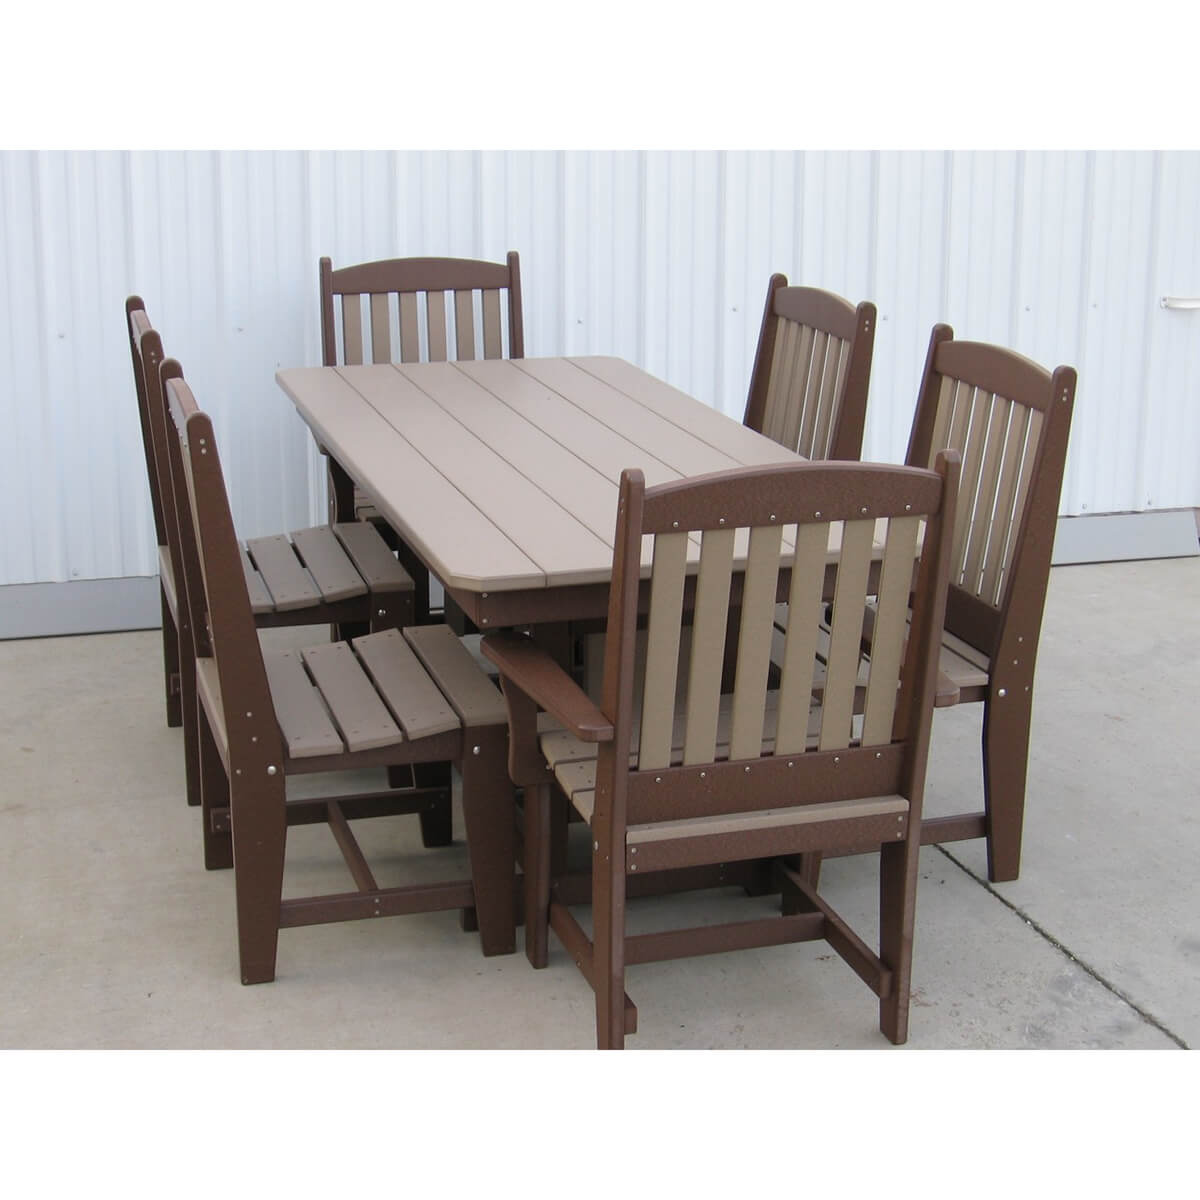 72 Inch Rectangle Table with Chairs